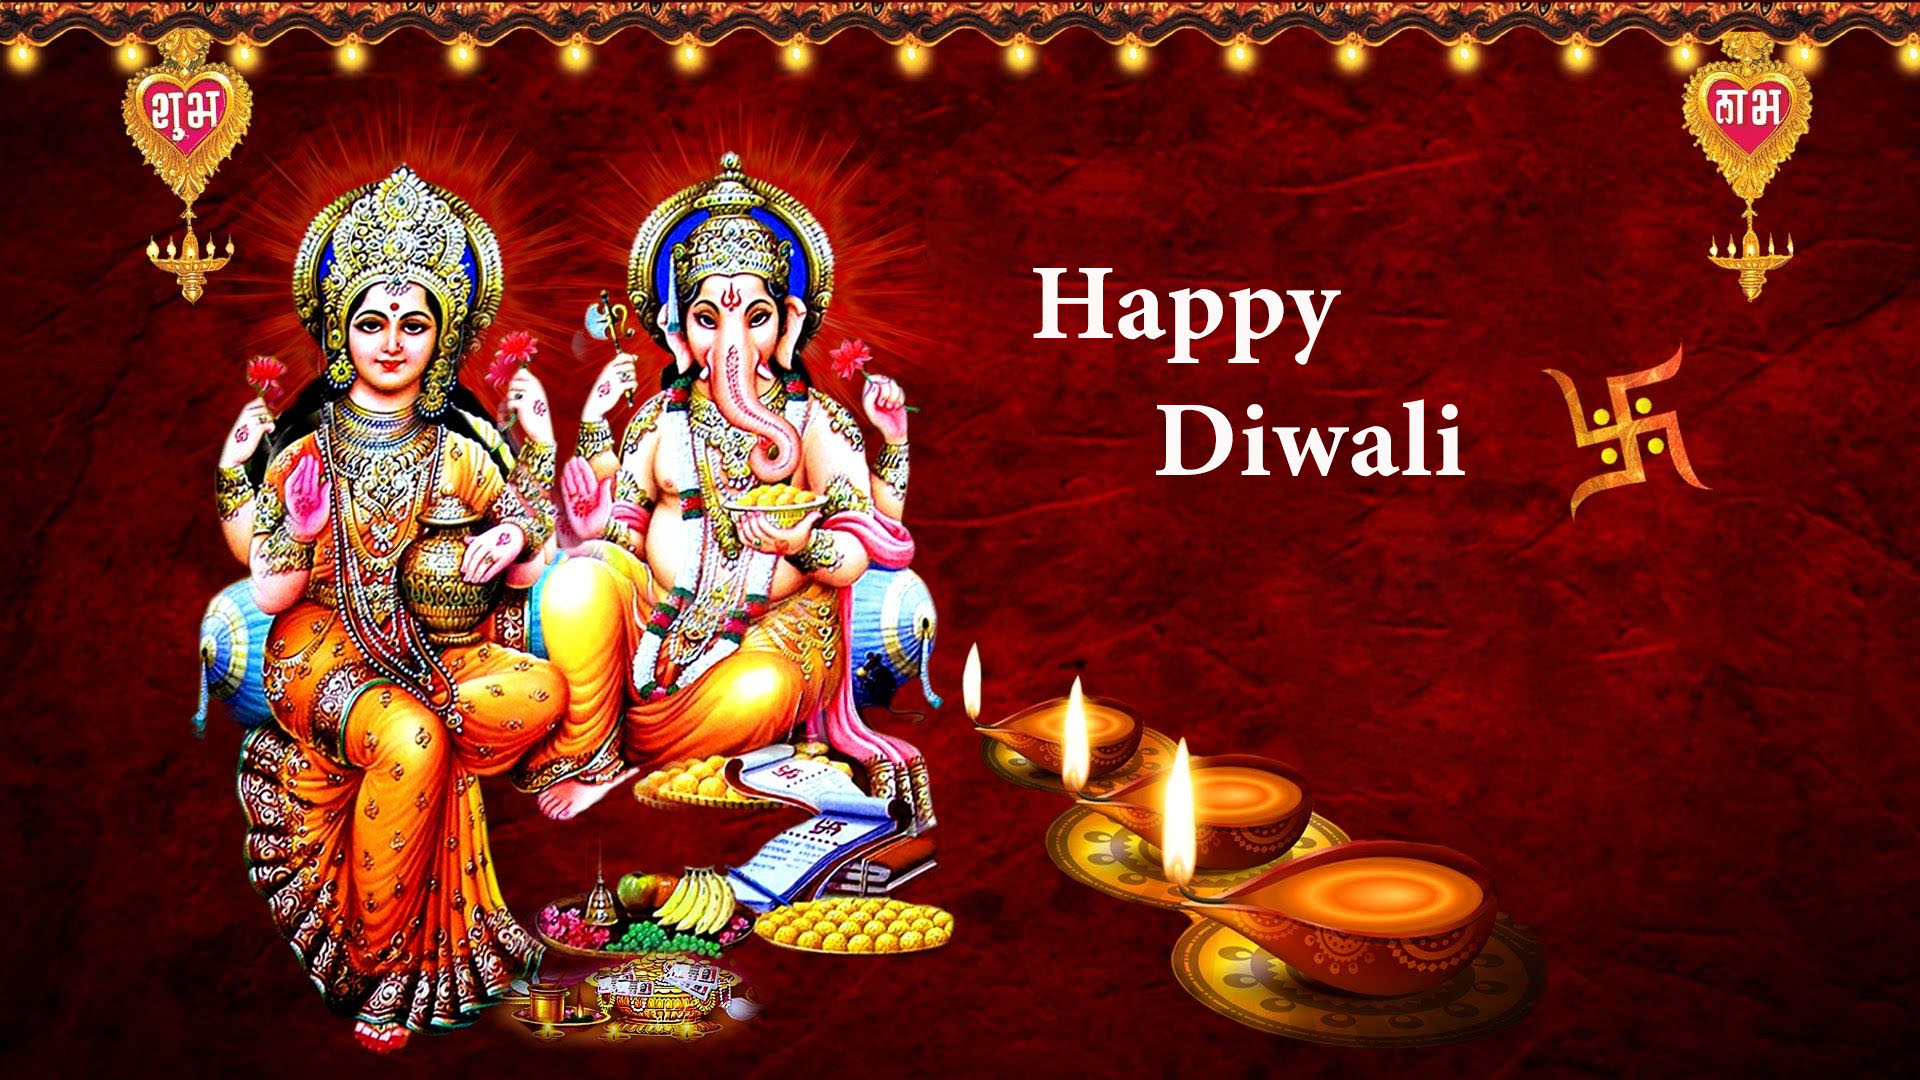 Diwali Laxmi Ganesh Wallpaper Hd